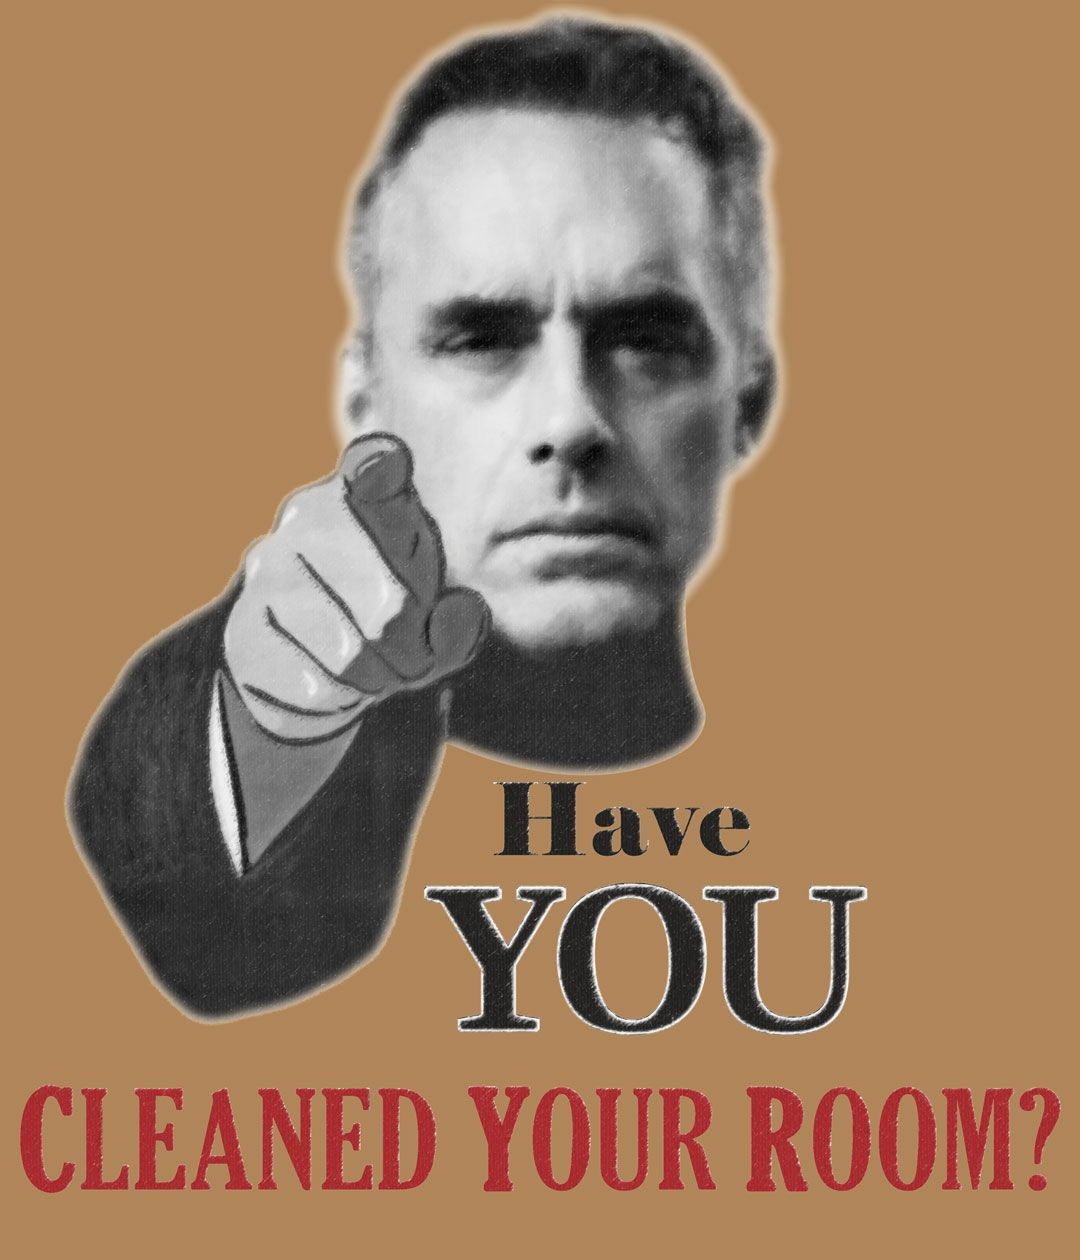 Professor Jordan Peterson Wants You To Clean Your Room